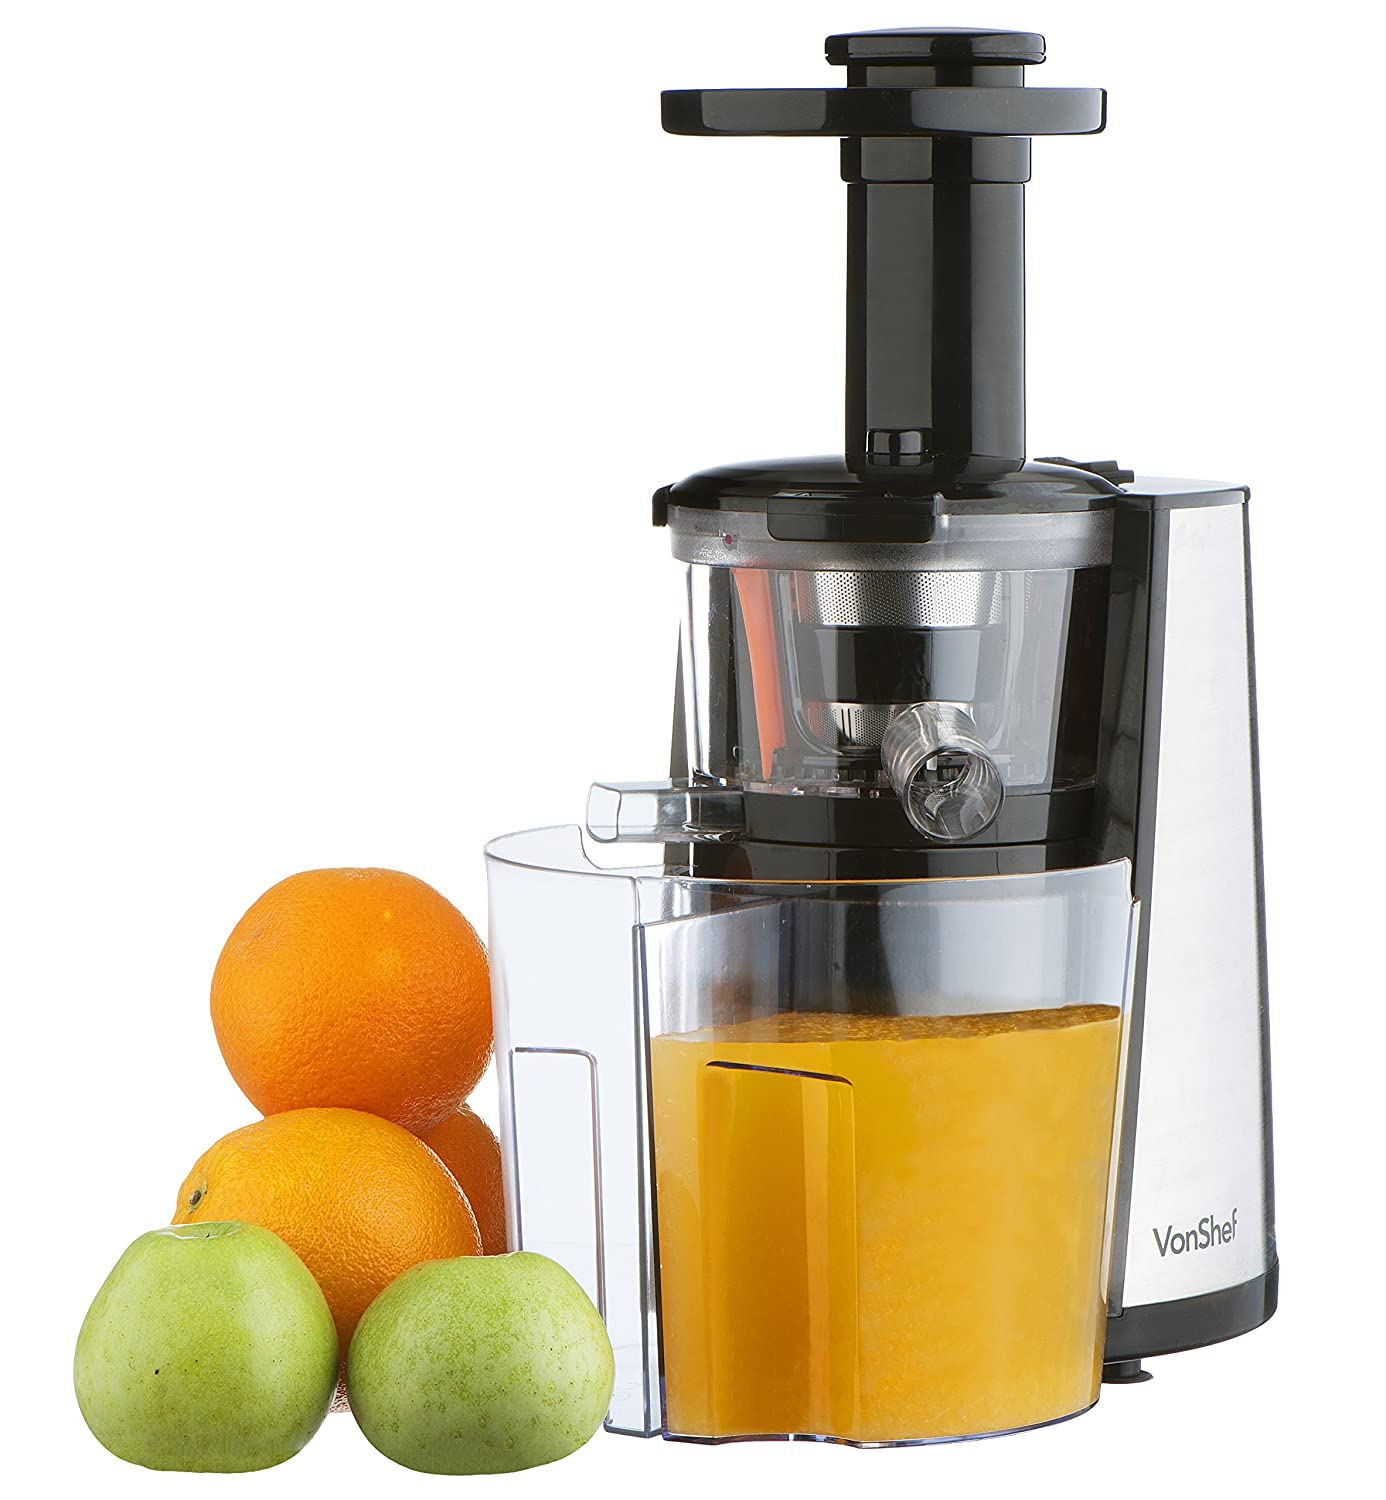 Best Masticating Juicer Deals : Top 10 Best Masticating Juicers 2016-2017 on Flipboard